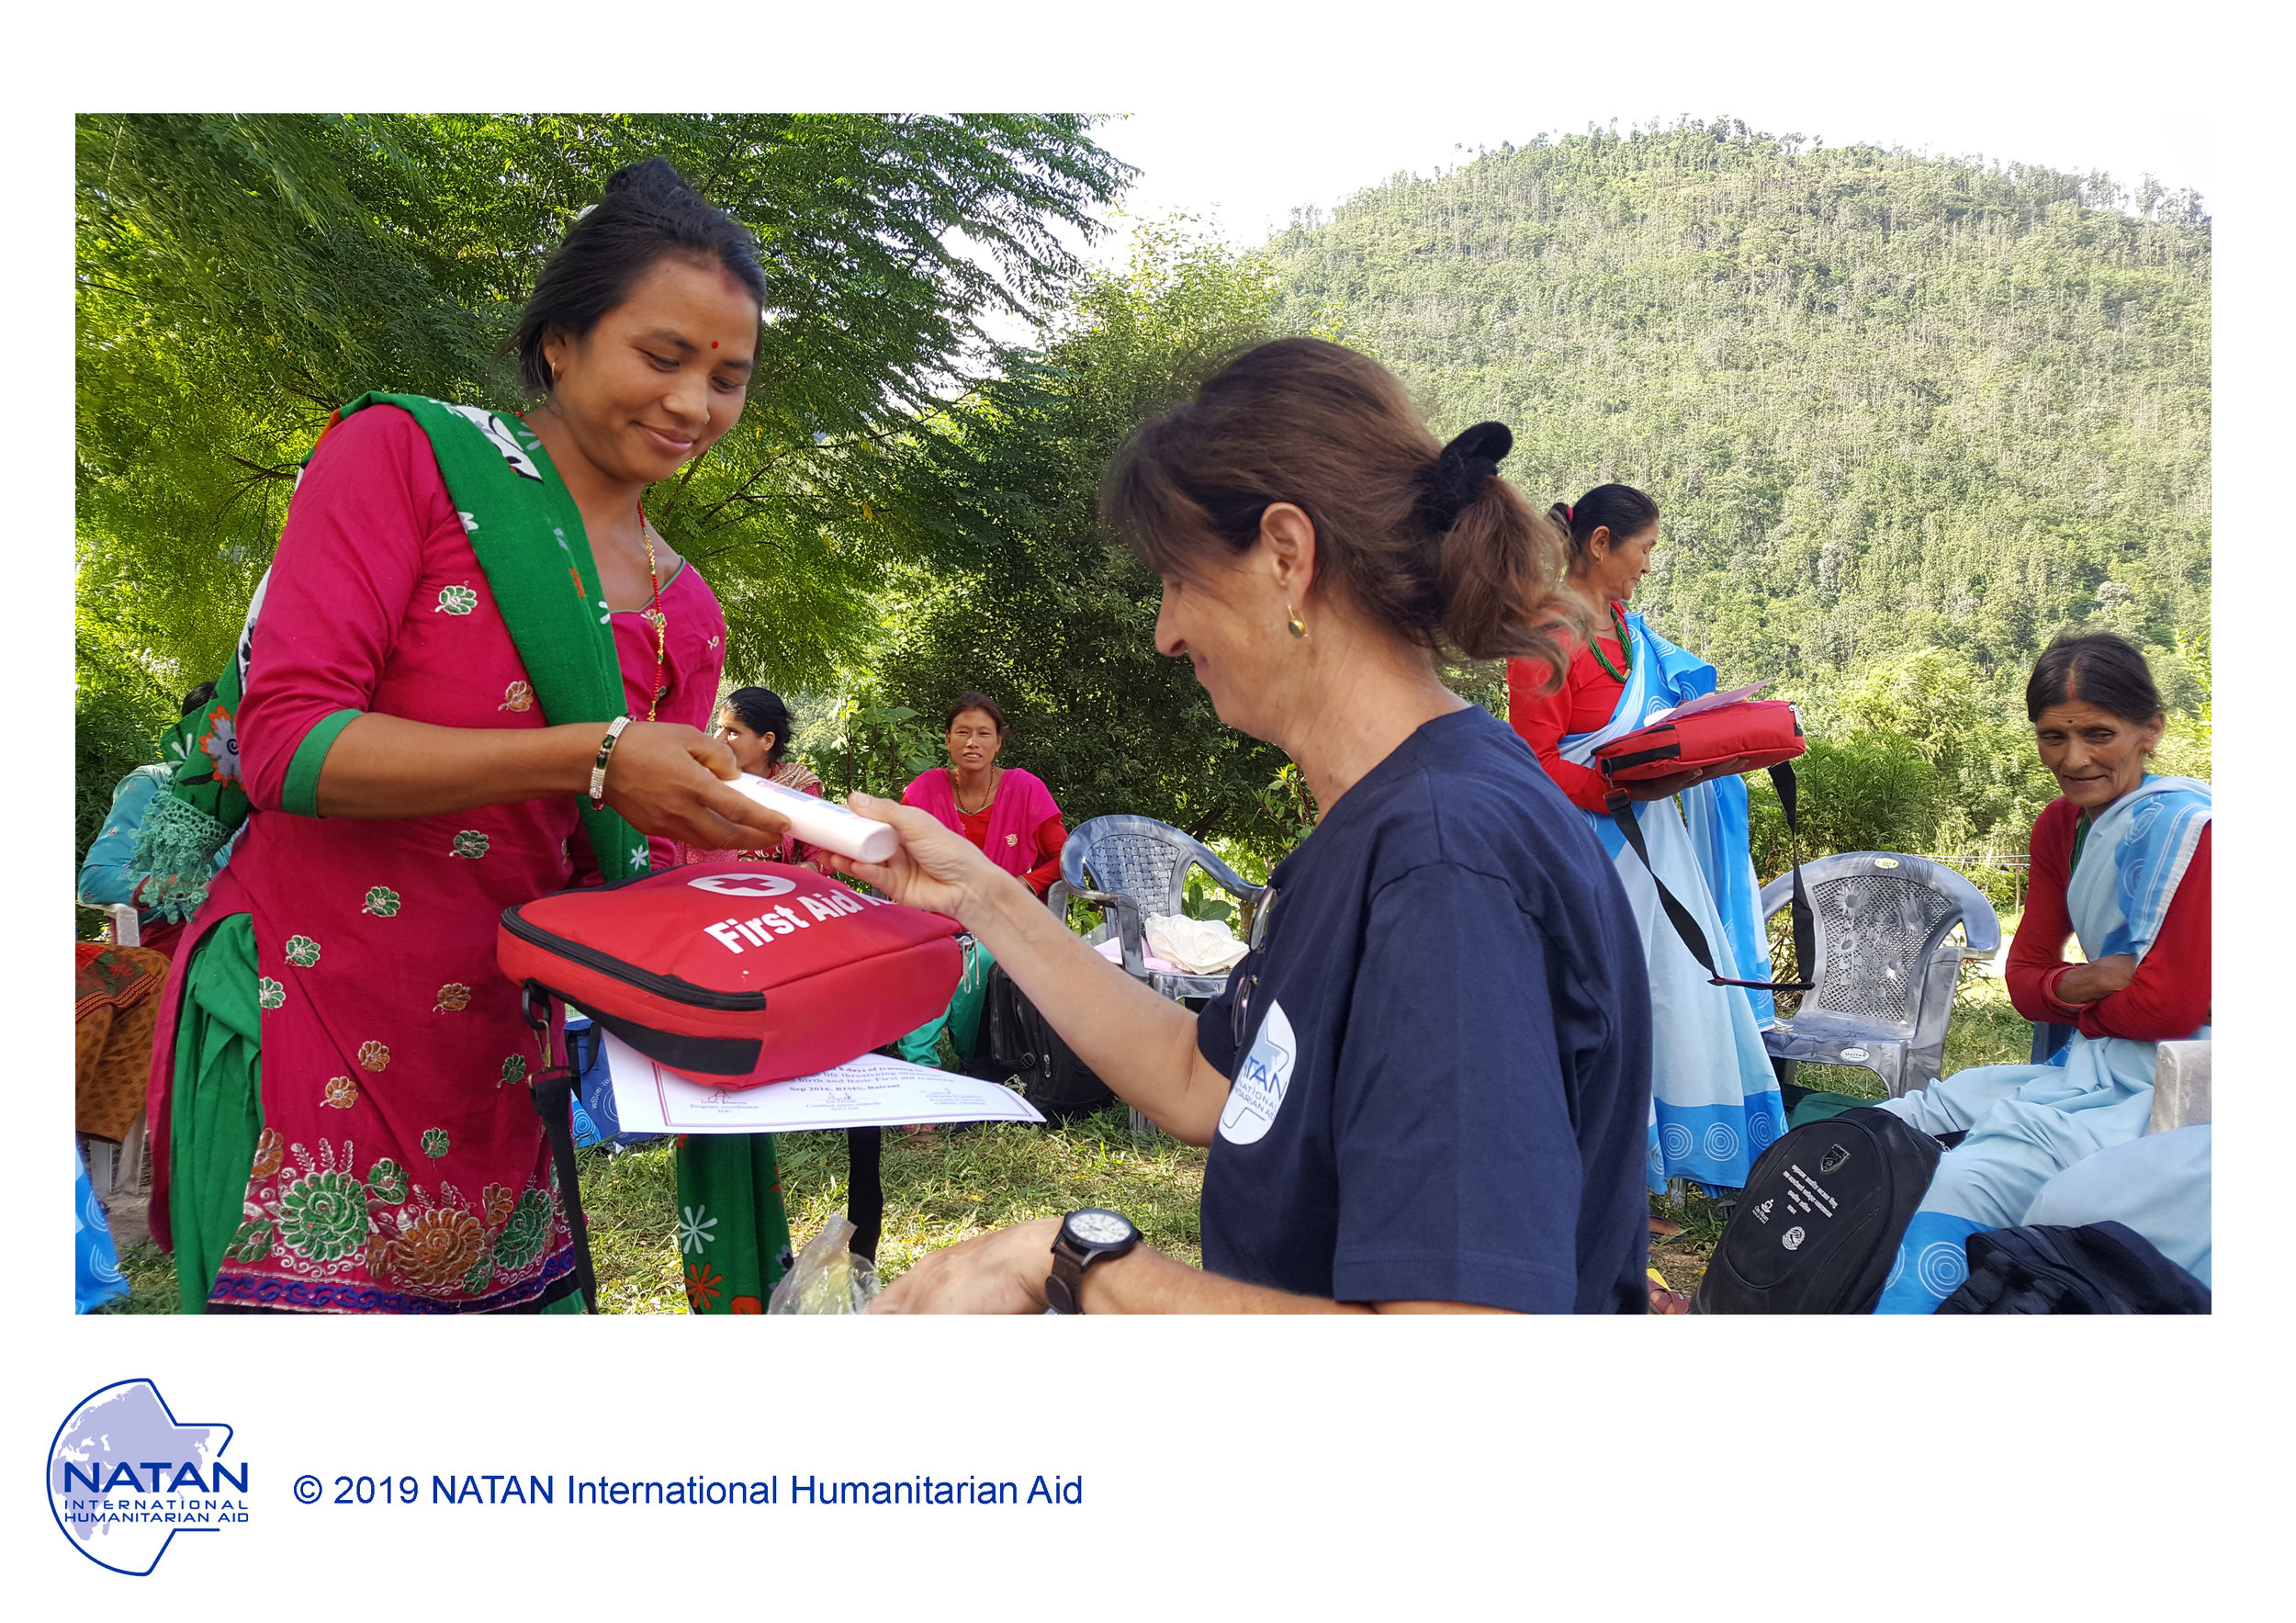 nepal 2016 - local midwives and community health volunteers graduate from natan training program on reproductive health in the Dahding region, following natan's earthquake relief operation the previous year.